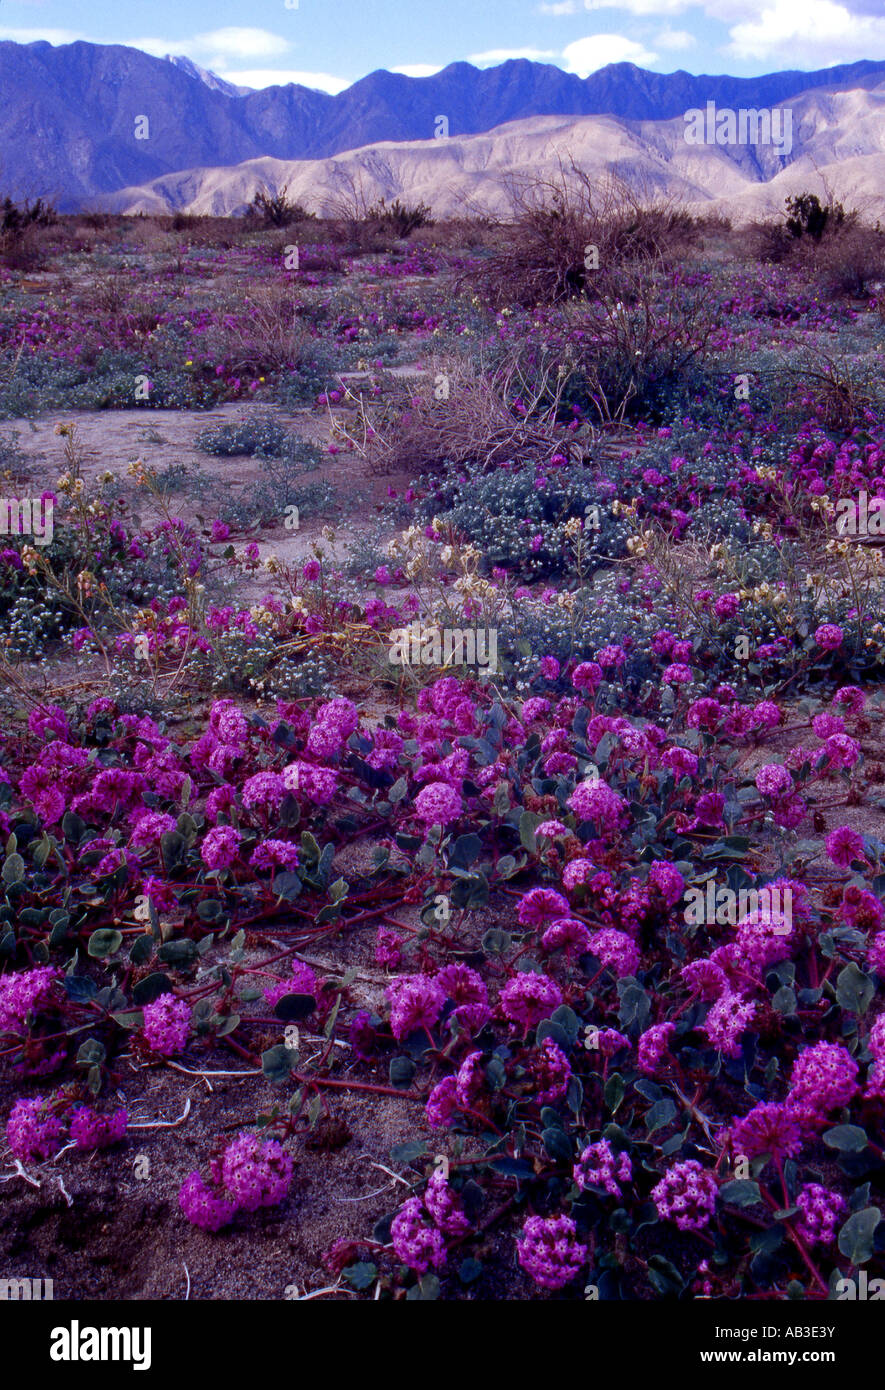 Equinox San Diego >> Sand Verbena In Coyote Canyon Anza Borrego Desert State Park Borrego Stock Photo, Royalty Free ...